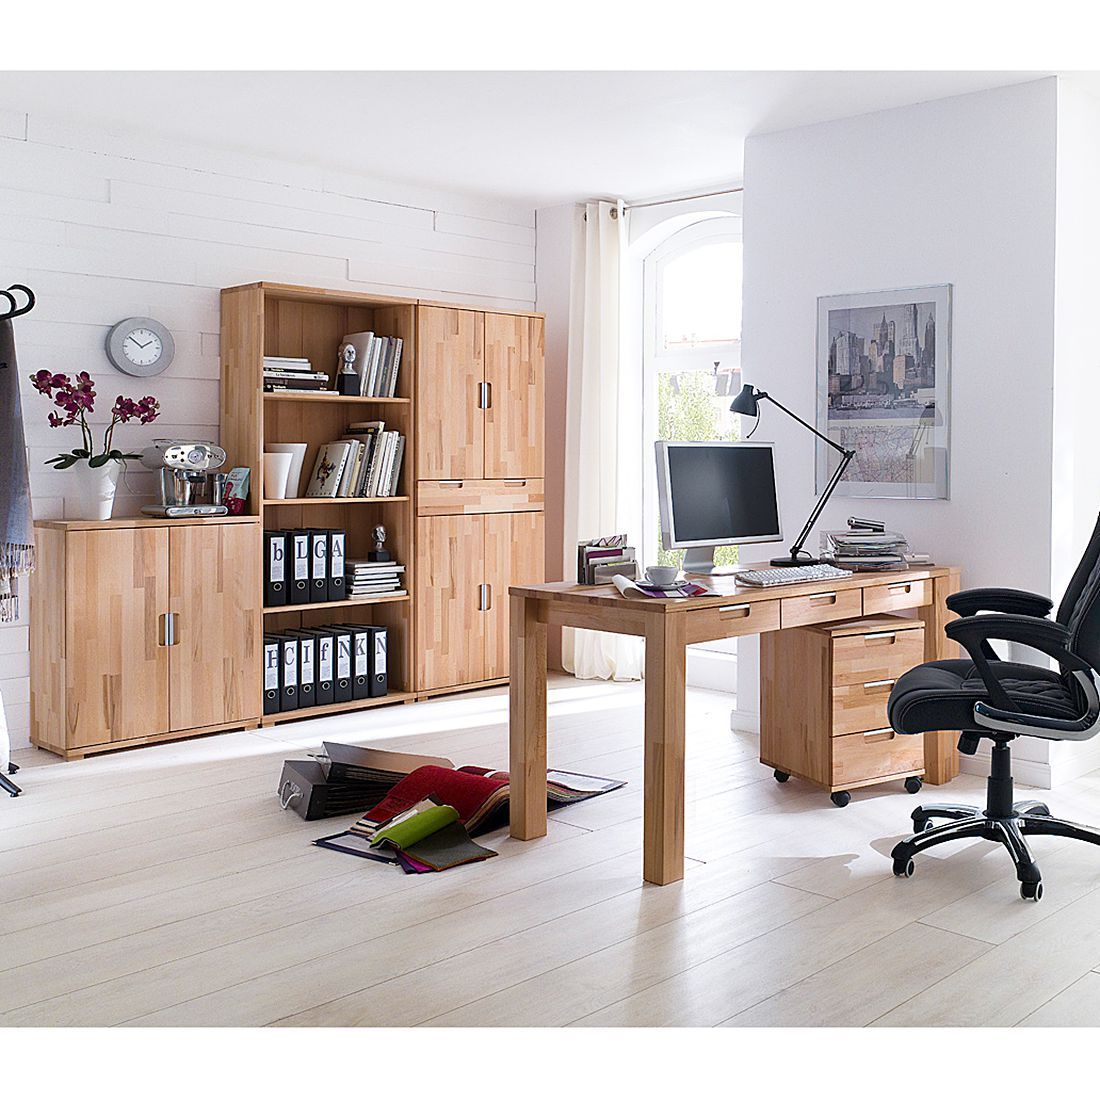 schreibtisch lumberjack kernbuche massiv ge lt b rotisch computertisch tisch ebay. Black Bedroom Furniture Sets. Home Design Ideas